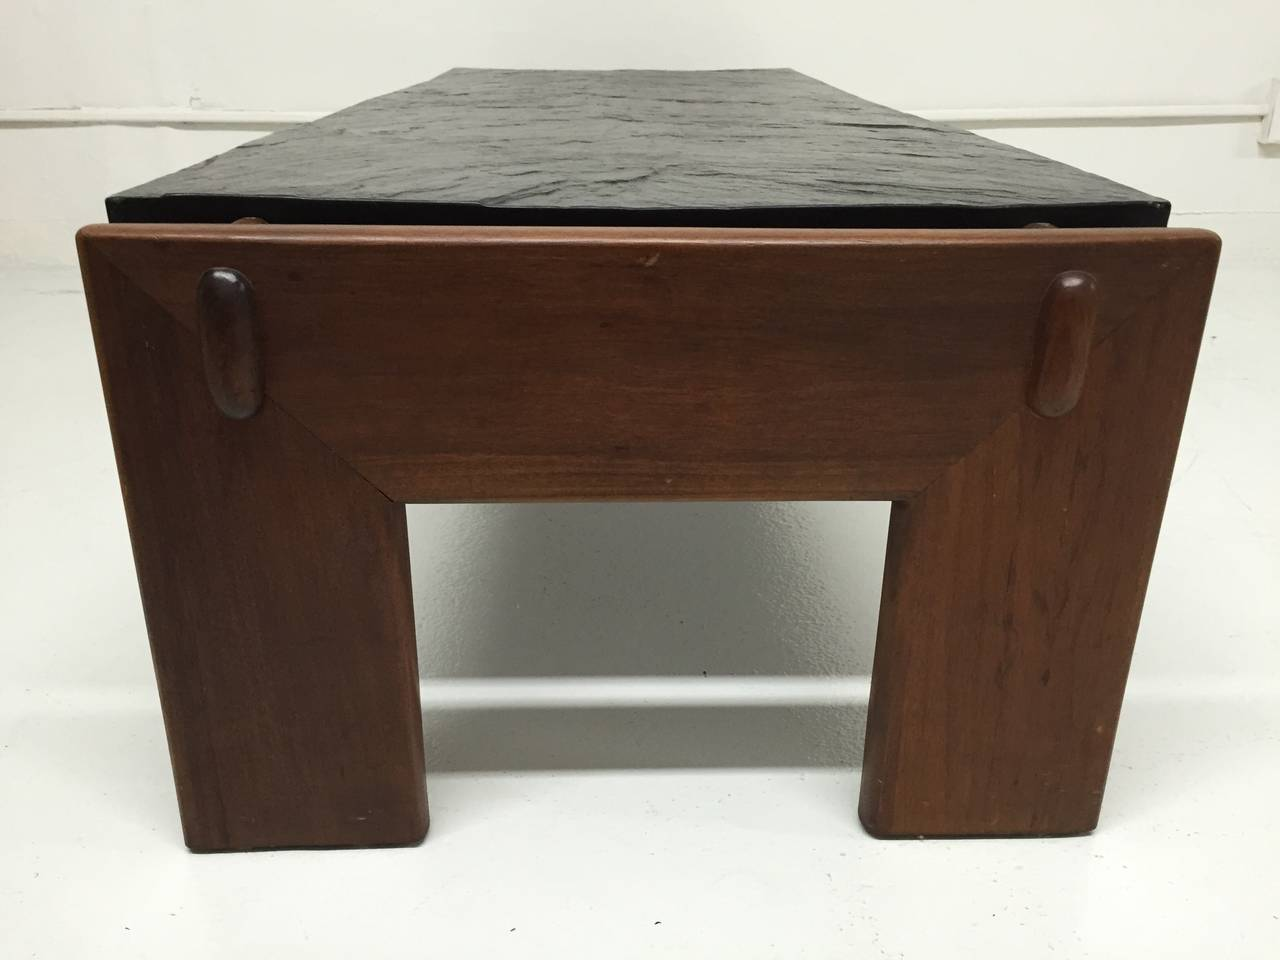 20th Century Adrian Pearsall Coffee Table For Craft Associates For Sale